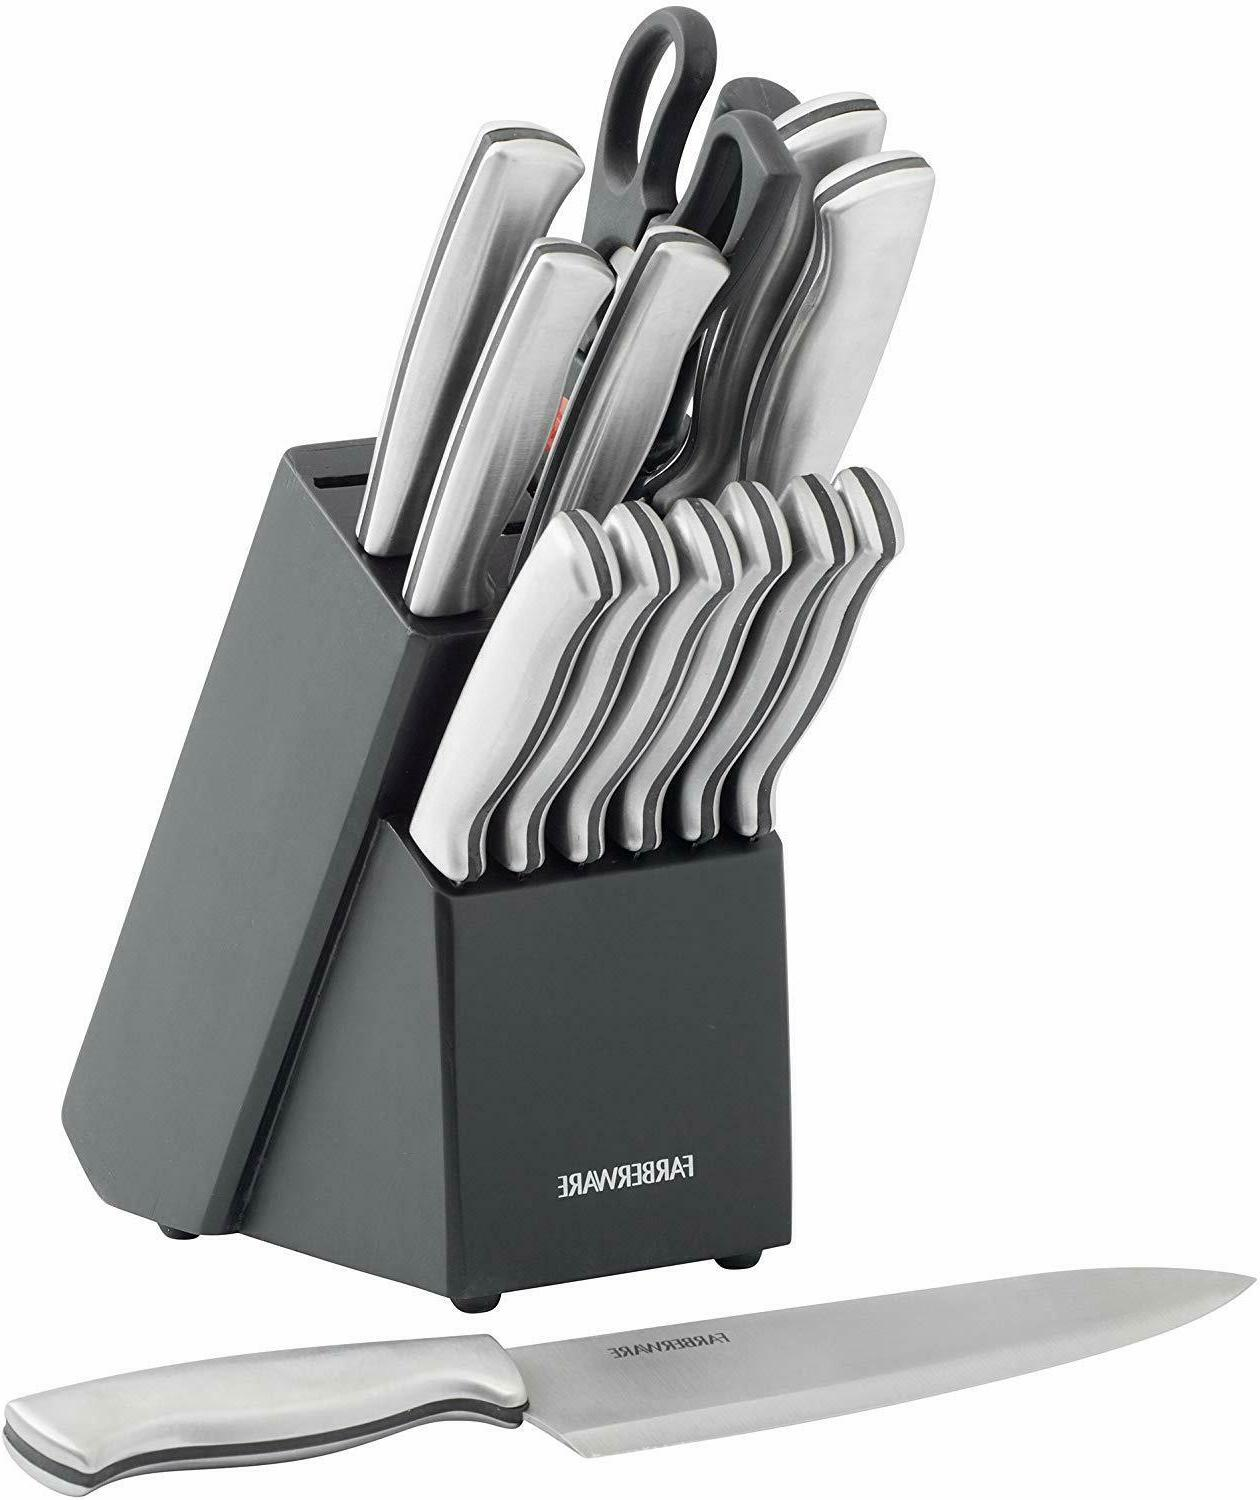 Stainless Steel Kitchen Knives Cutlery Block Set Knife 15PC